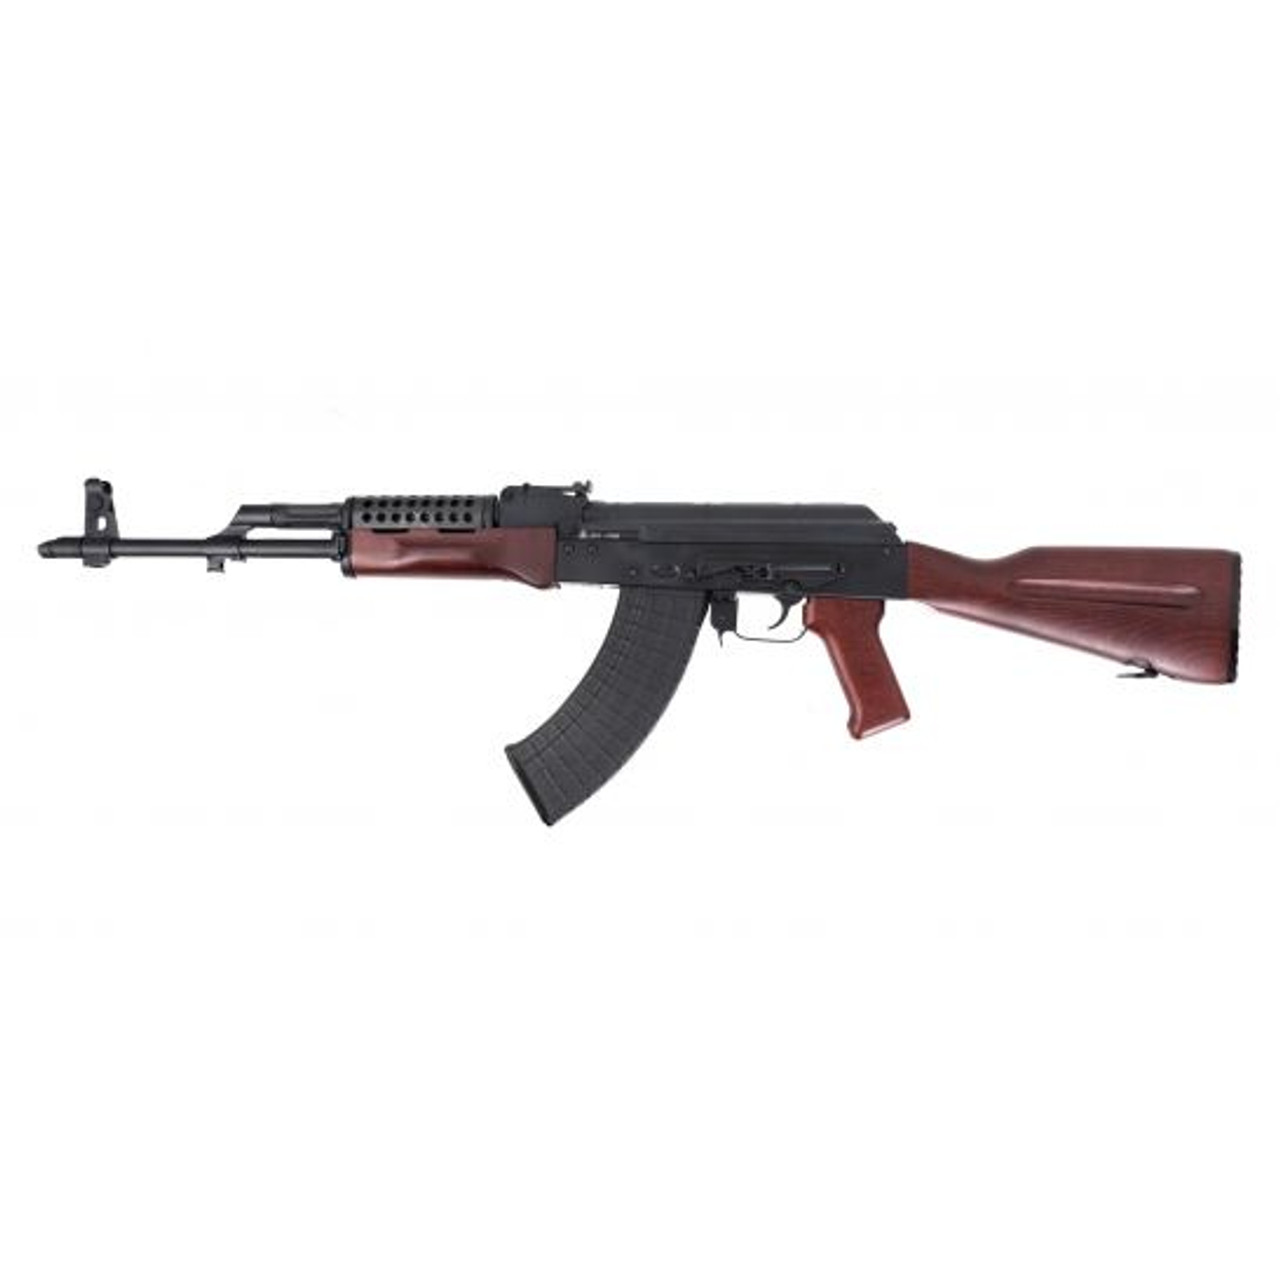 Palmetto State Armory PSAK-47 GF3 Forged Cheese Grater HG CALIFORNIA LEGAL - 7.62x39 - Red Wood